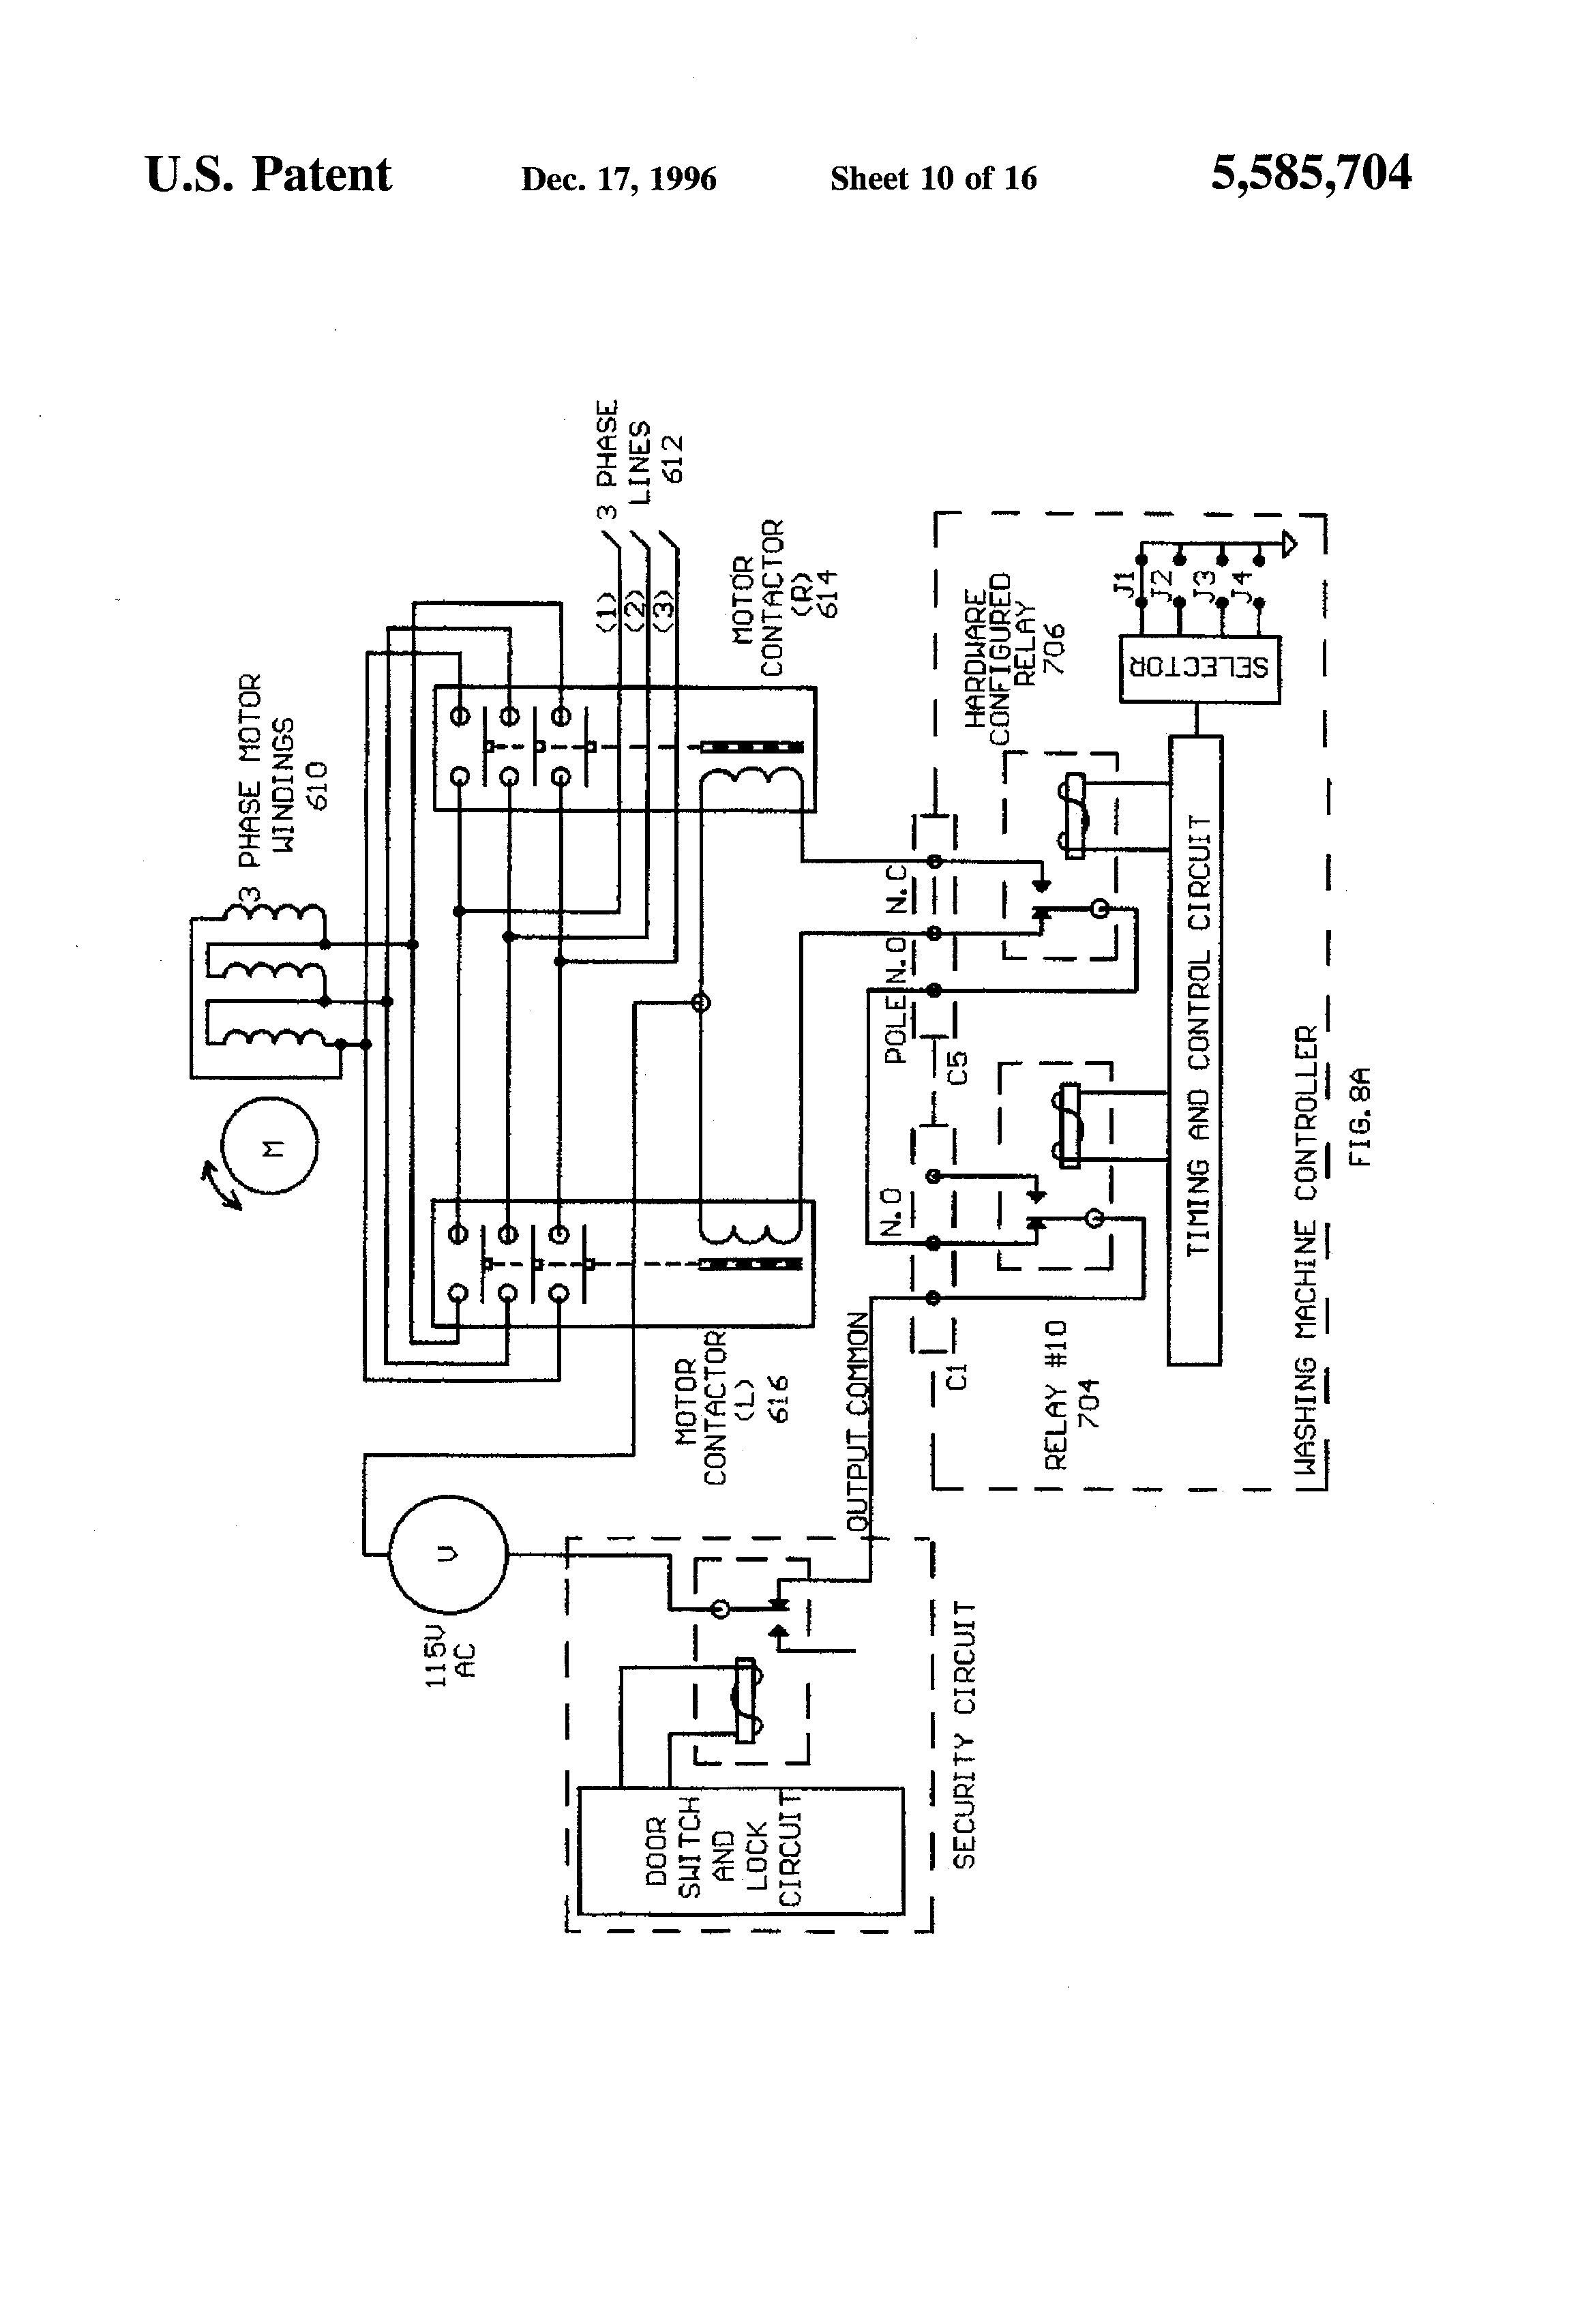 US5585704 10?resize=840%2C1234 whirlpool washing machine wiring diagram whirlpool wiring  at eliteediting.co